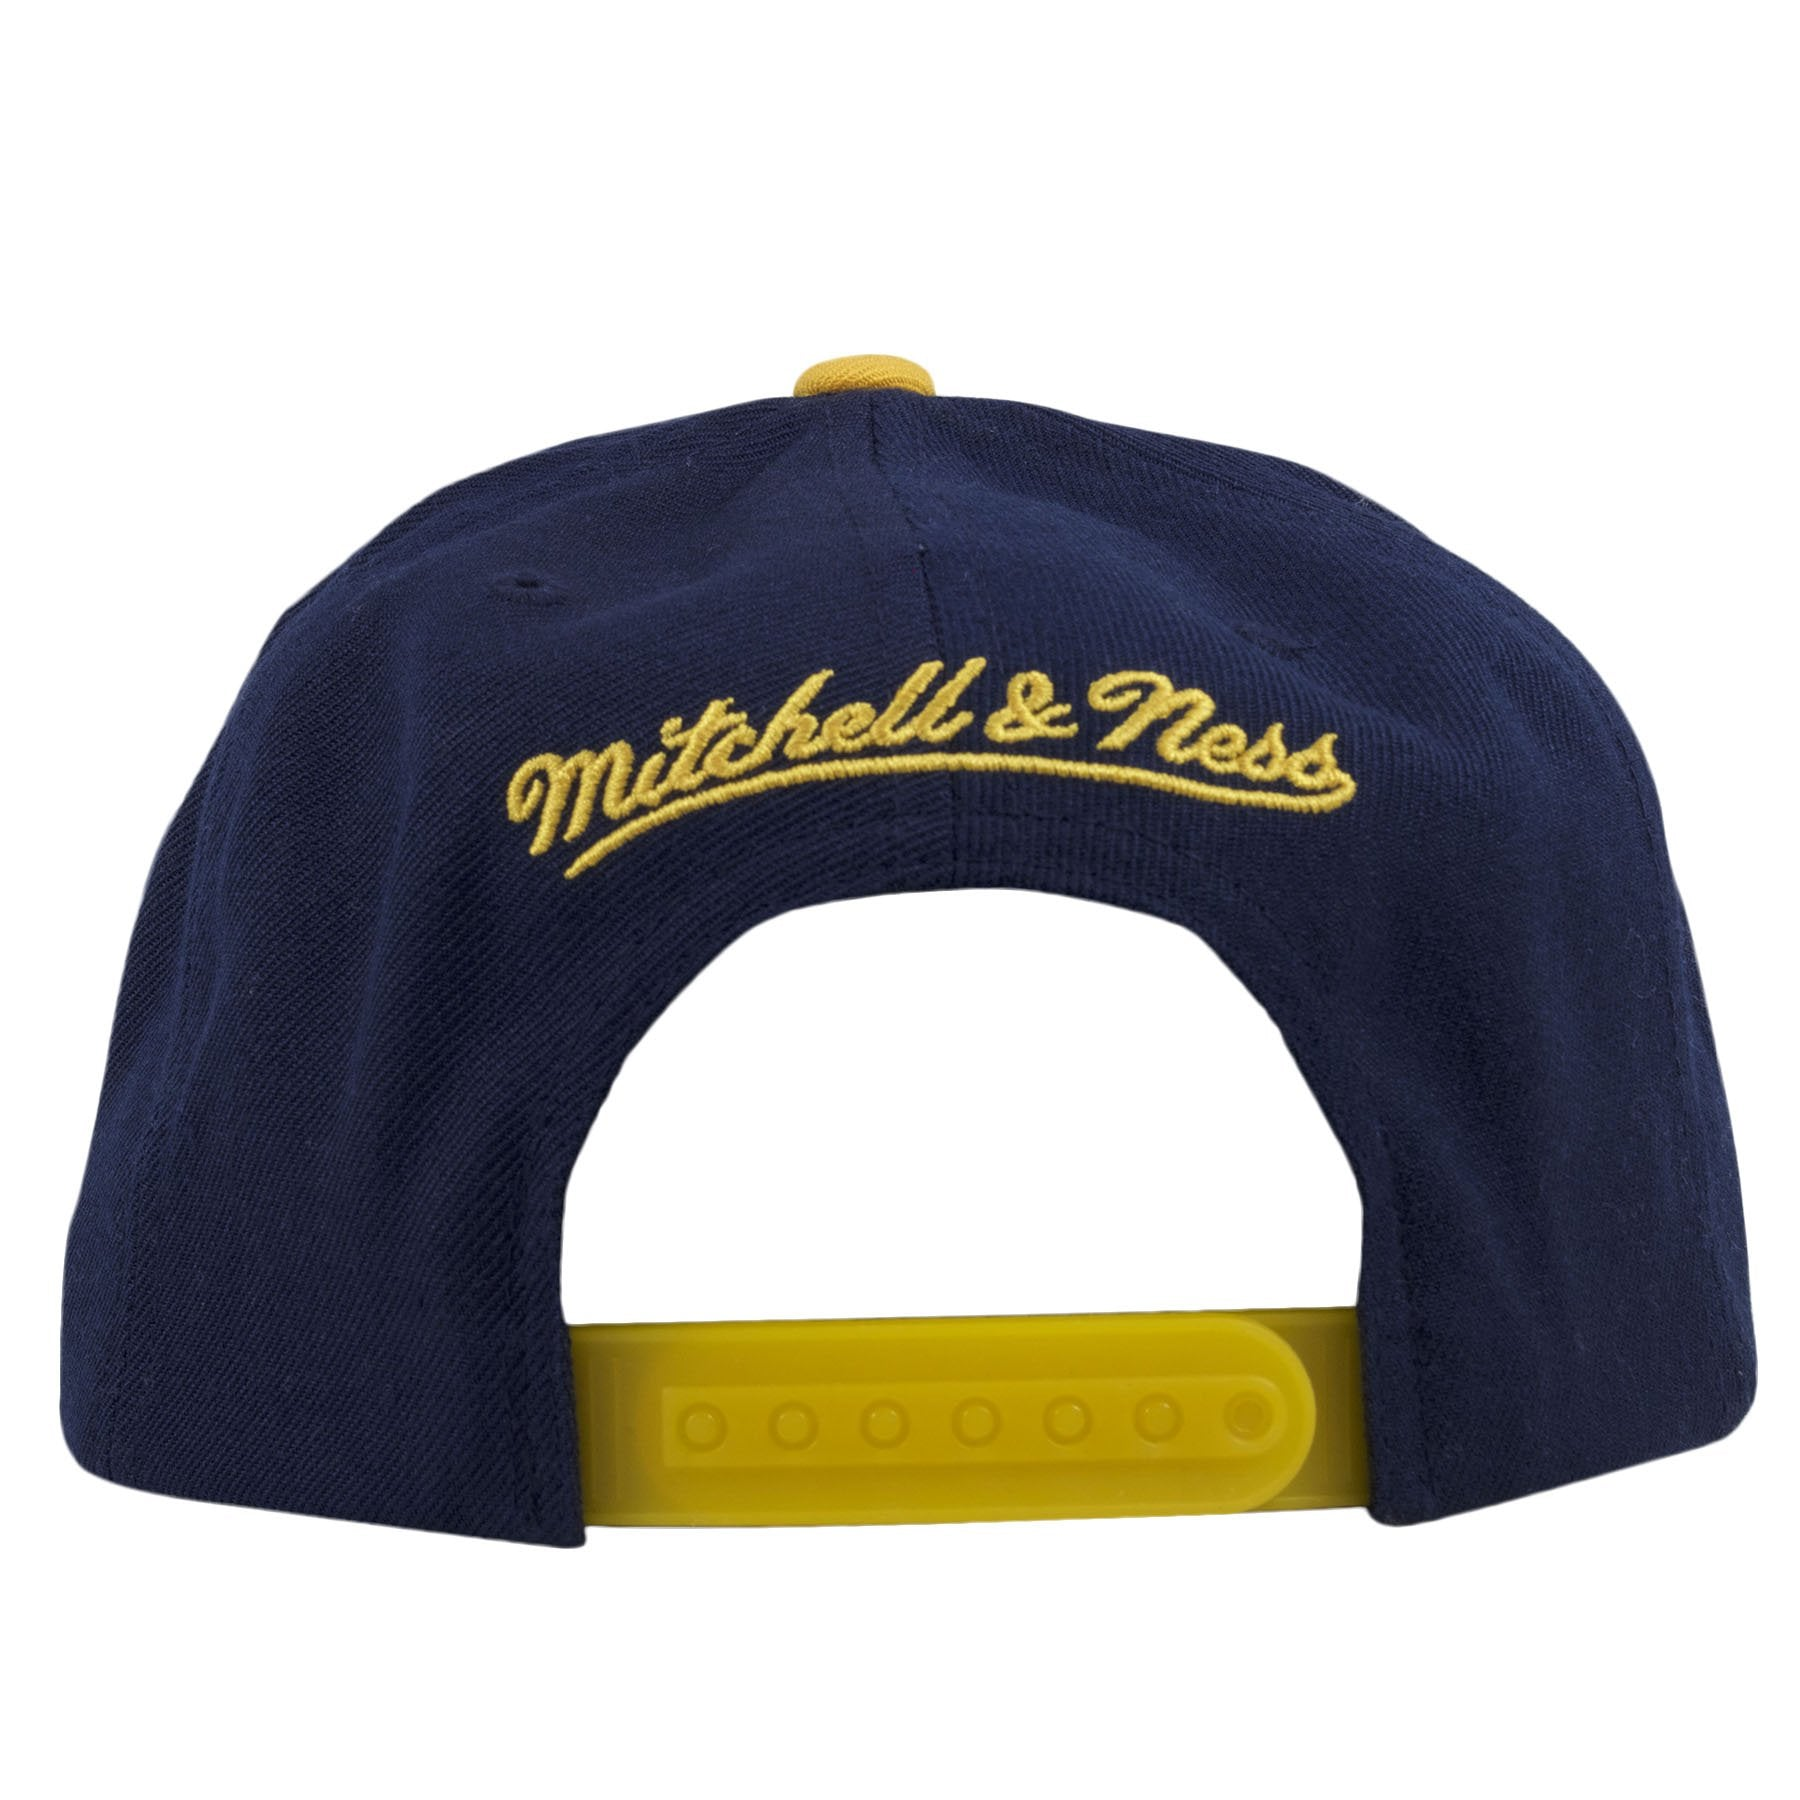 ... on the back of the LA Galaxy snapback hat is the Mitchell and Ness logo  embroidered ... 0ed6becaaa83